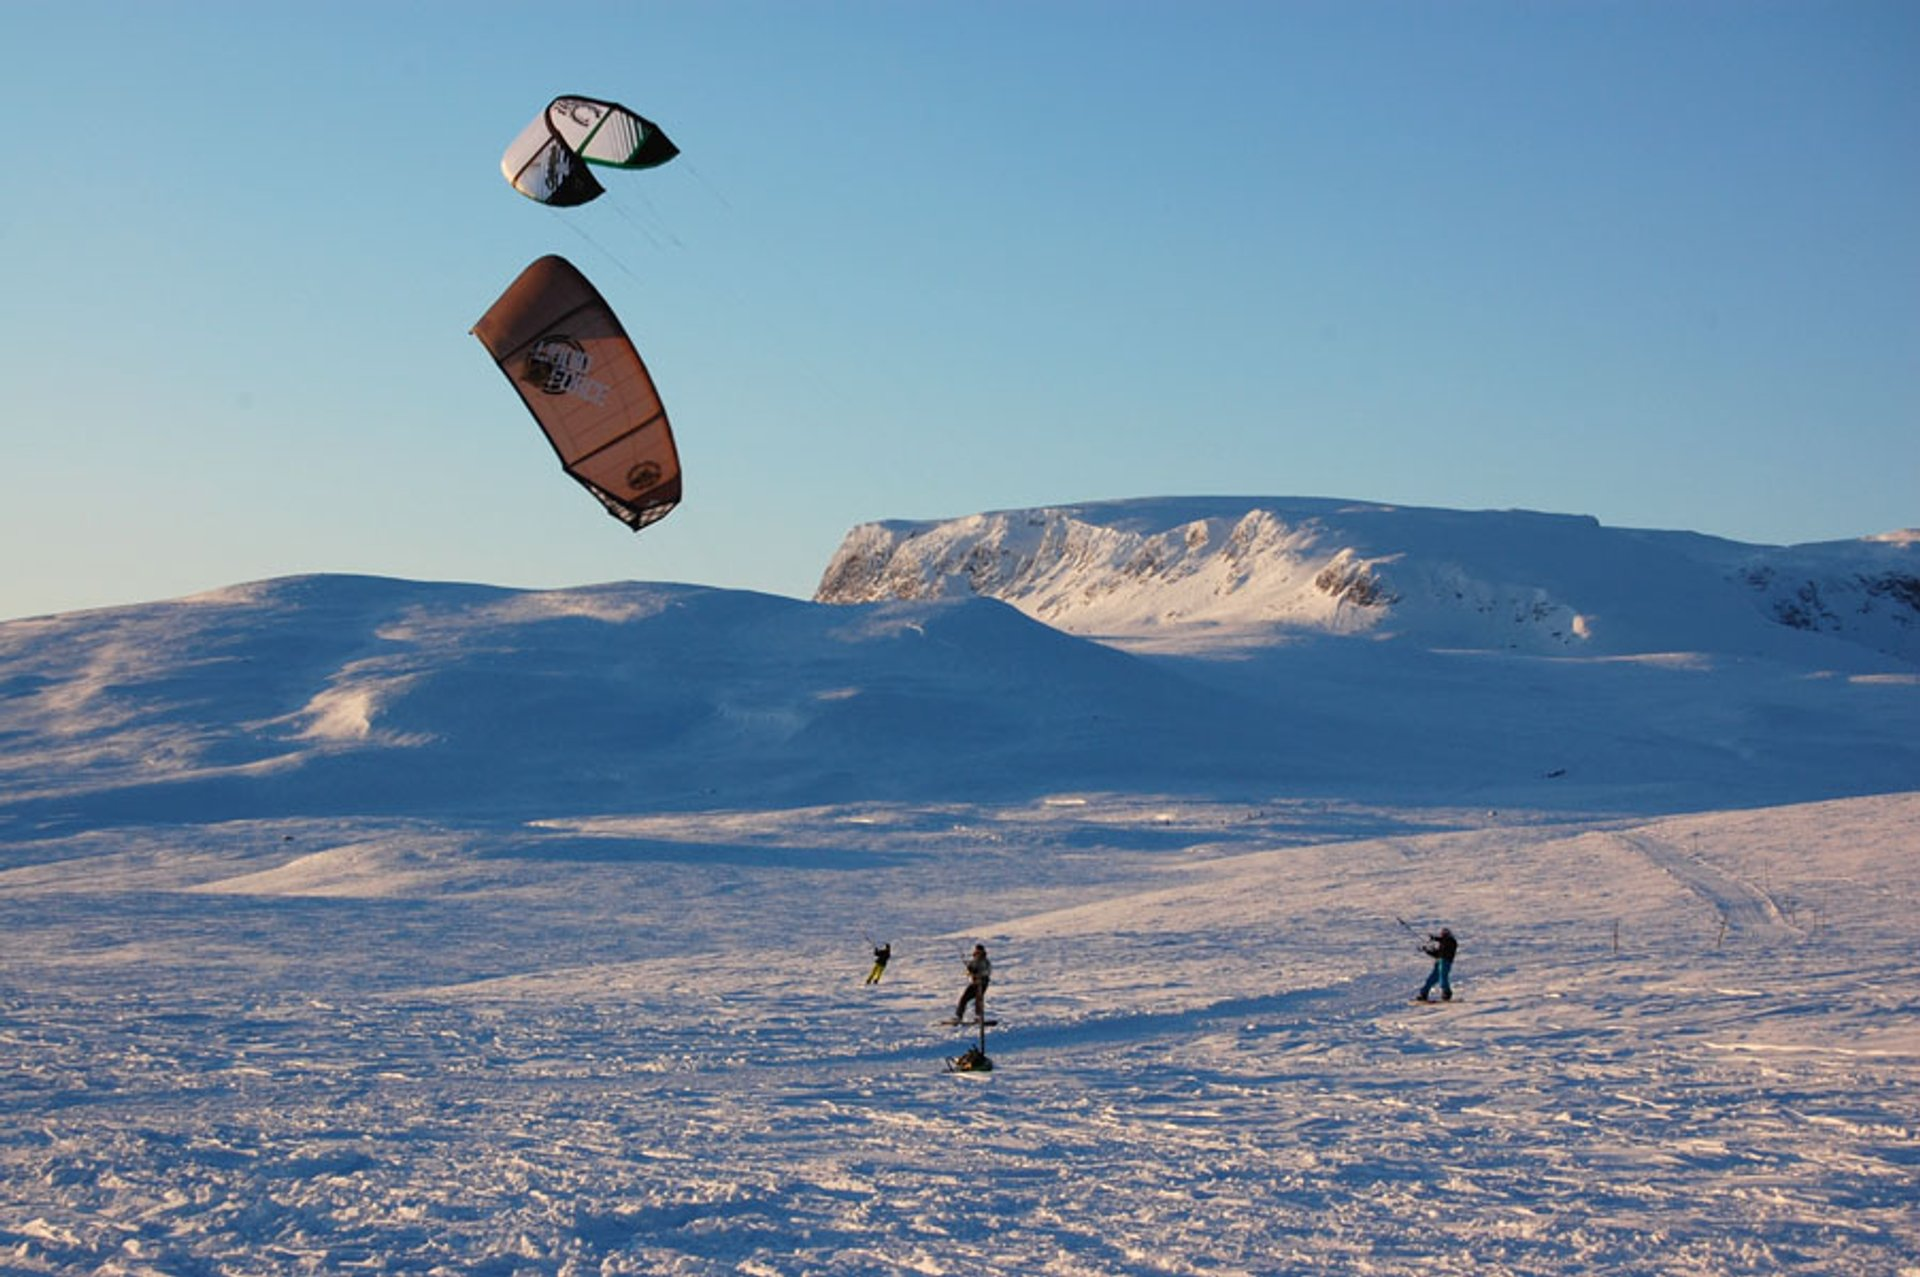 Snow Kiting in Norway - Best Season 2020